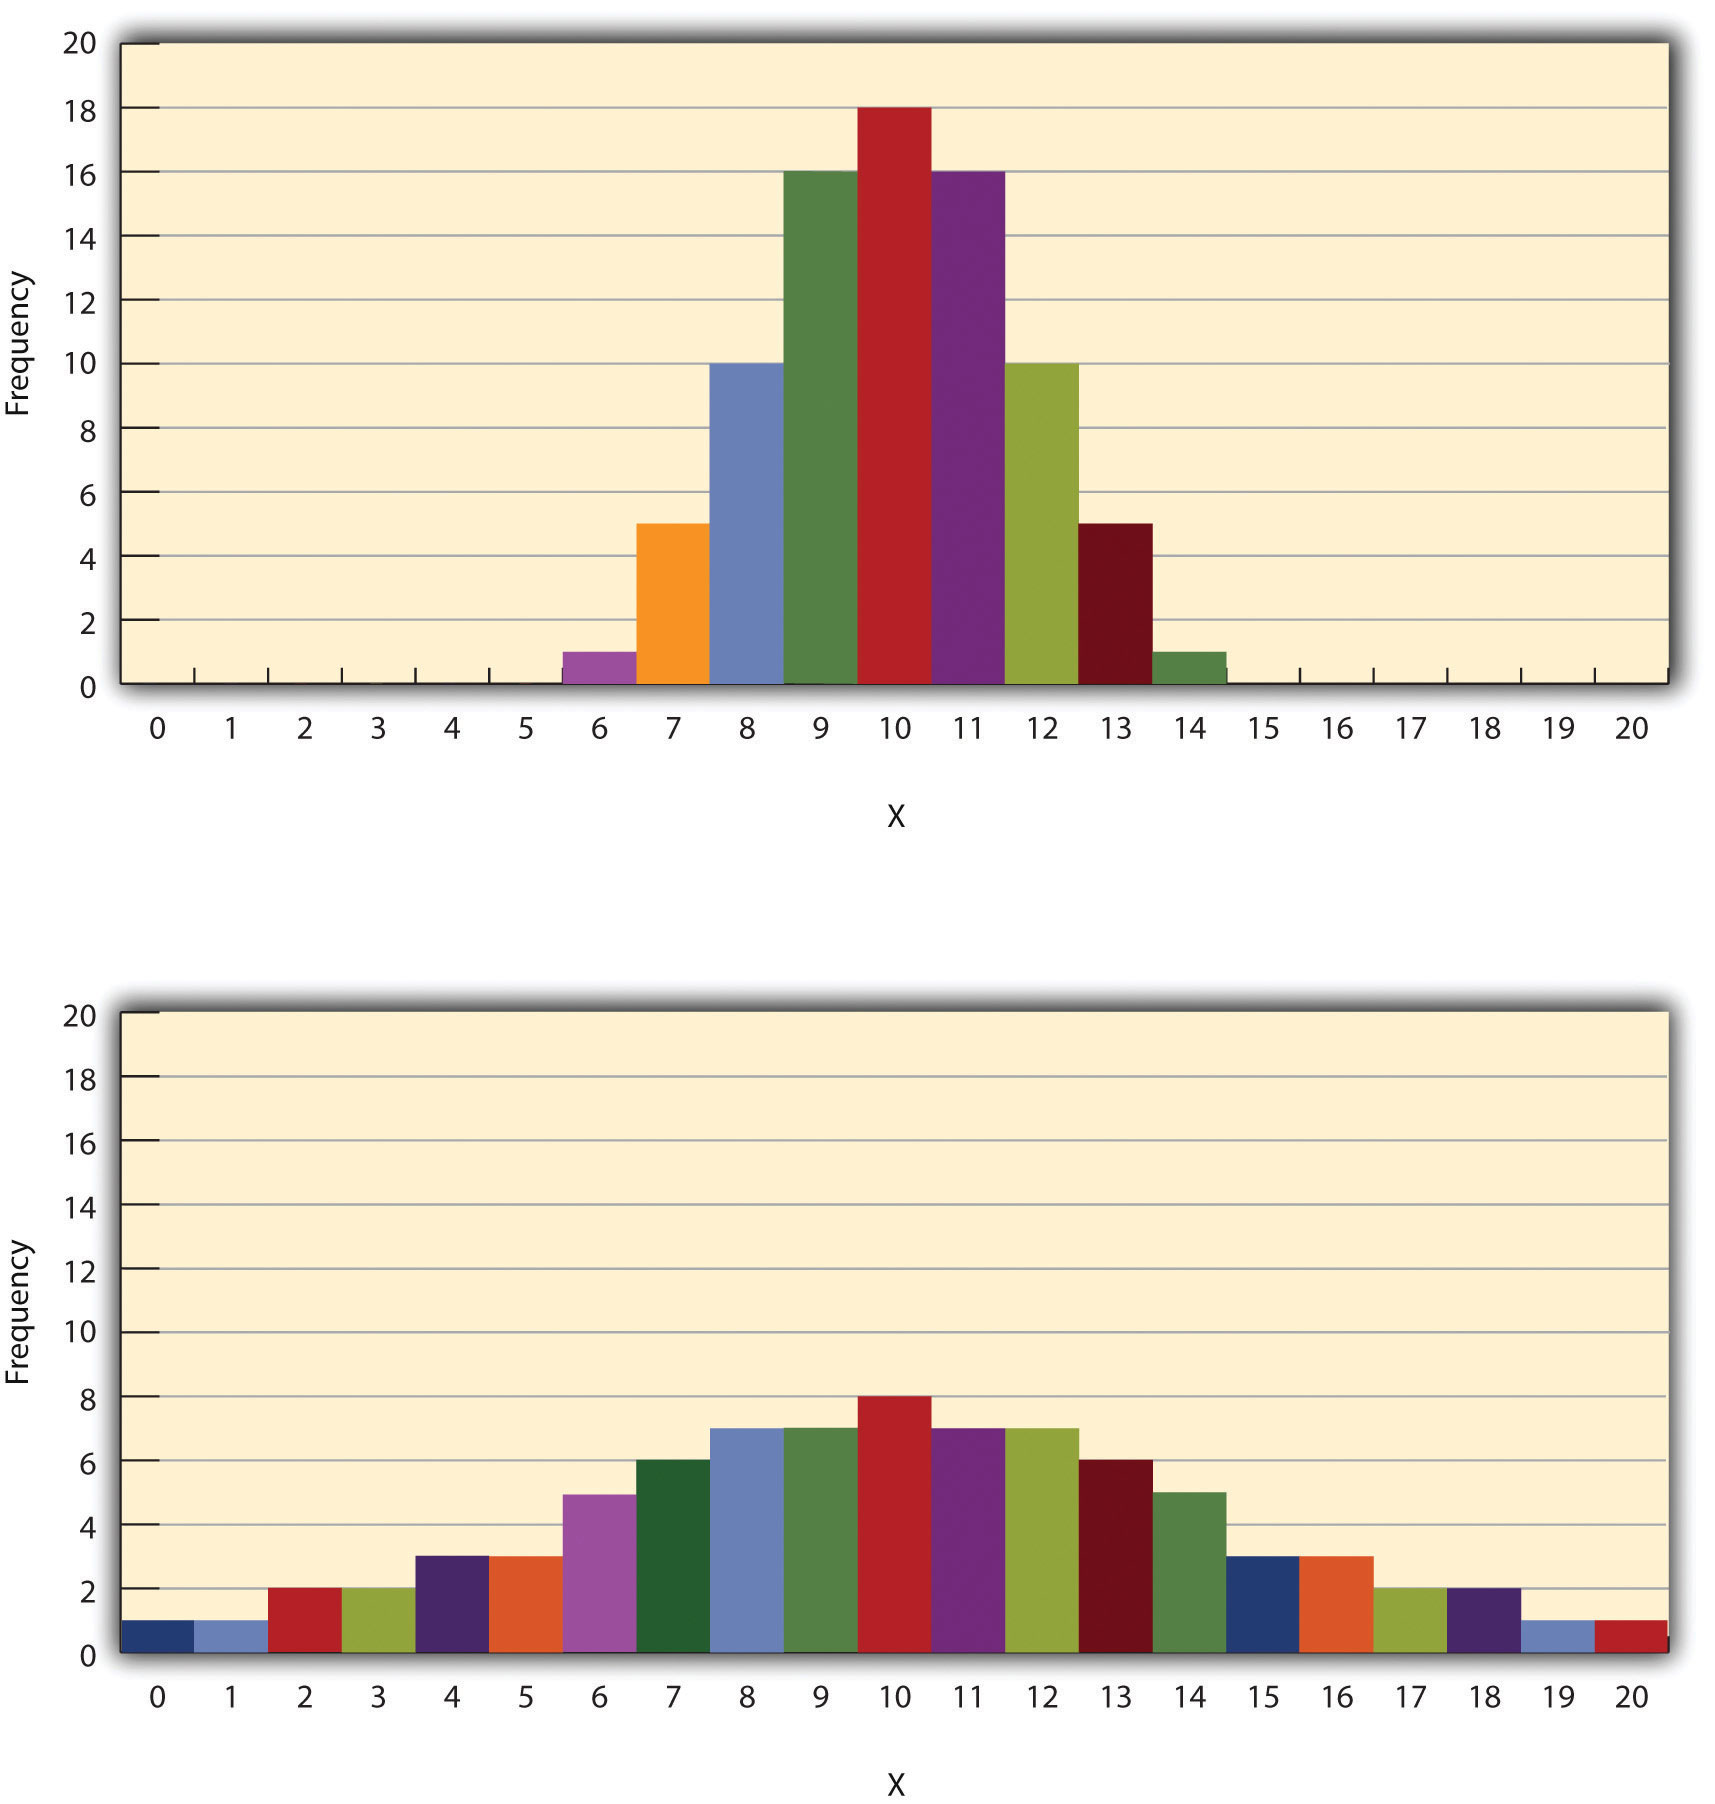 Histograms Showing Hypothetical Distributions With the Same Mean, Median, and Mode (10) but With Low Variability (Top) and High Variability (Bottom)